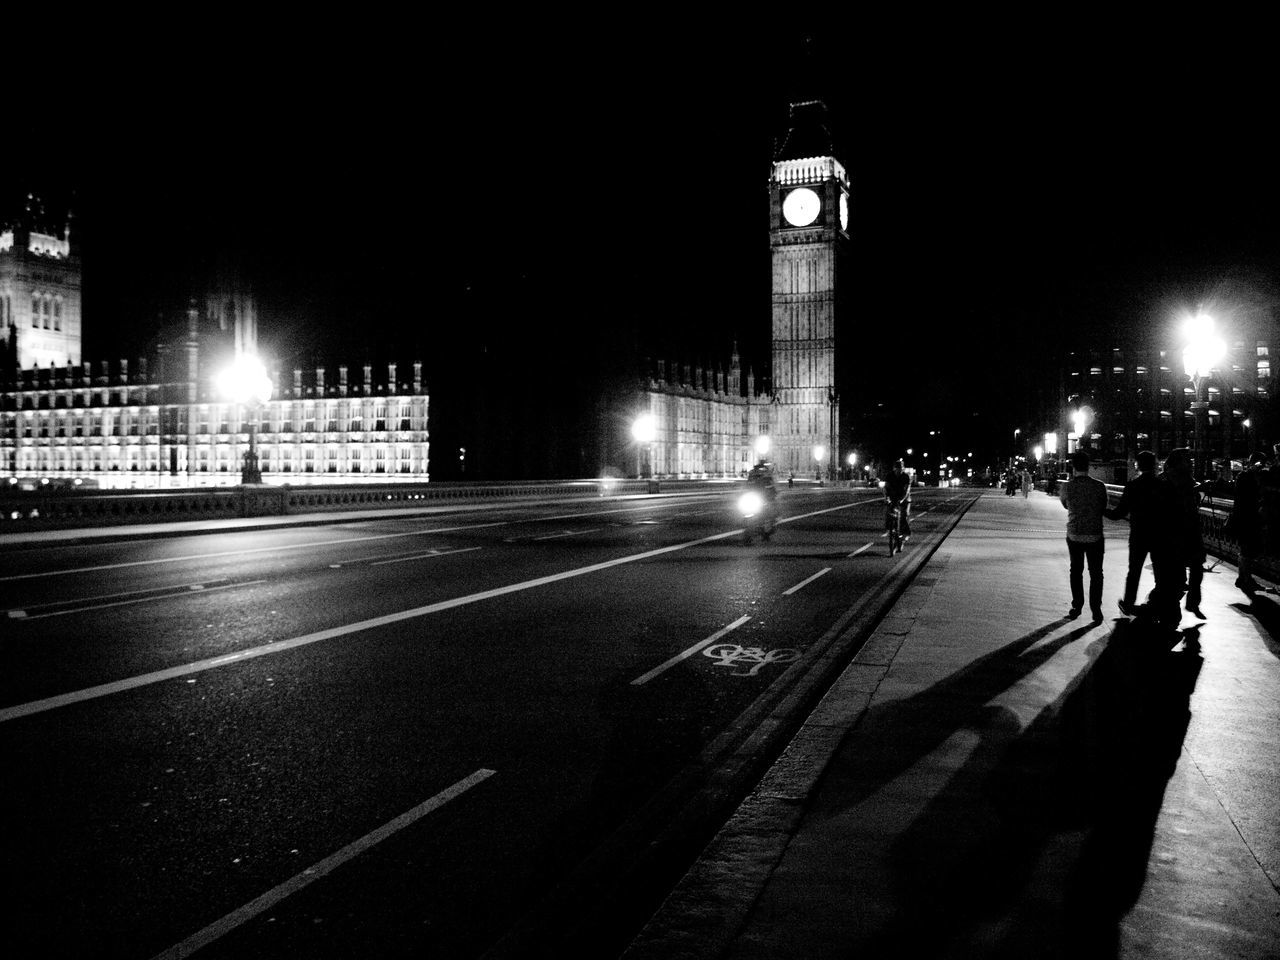 illuminated, night, architecture, built structure, street light, real people, travel destinations, building exterior, travel, road, city life, city, men, outdoors, clock tower, people